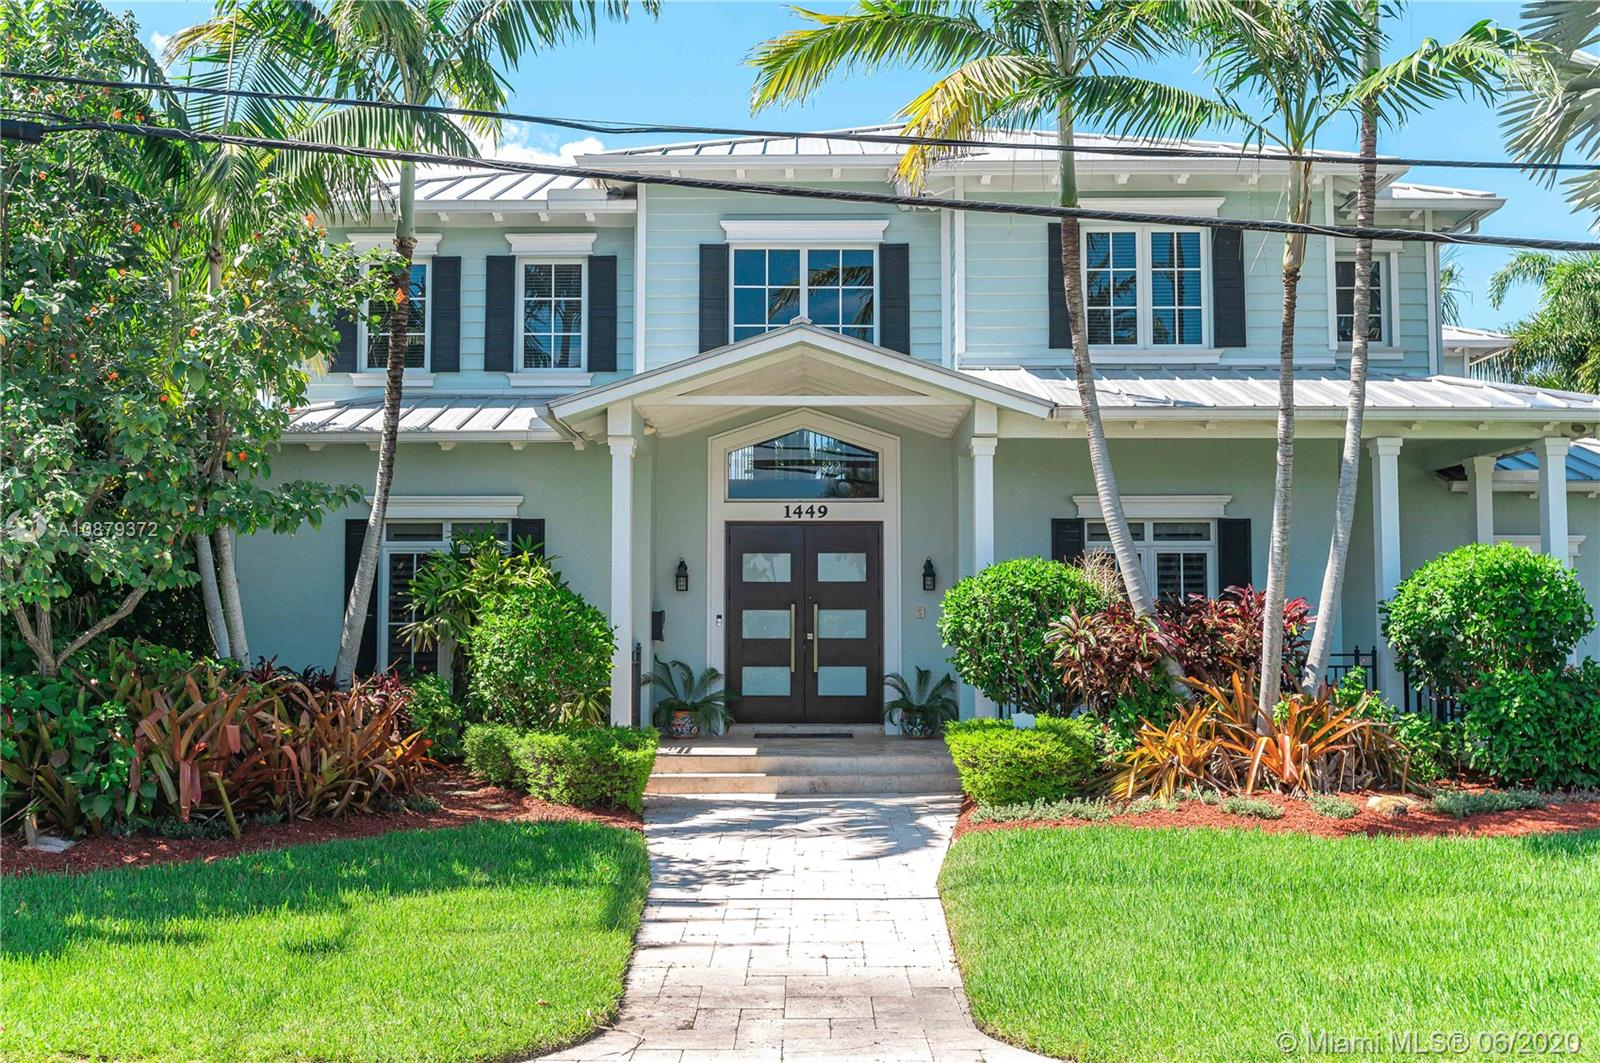 Live the Key West Style in Lauderdale Harbors.This open floorplan 4 Bed 4 Bath brings The Keys to Fort Lauderdale. Soring 20 foot wood coffered living room ceiling with wood burning fireplace,Step-down wet bar w/ ice maker,a wall of Windows overlooking 80 foot waterfront concrete seawall. Impact windows and doors throughout and three car garage.Situated on Large turning basin with direct ocean access. Large open kitchen featuring Sub-Zero Refrigerator, GE Monogram Double oven, warming drawer, cooktop on granite top island and Wine refrigerator.  Counter space and cabinet space is ample with walk-in pantry. Master Suite features Wood Ceiling, seating area, three walk-in closets dressing area plus covered 25 foot balcony overlooking downtown. Roman tub and walk-in shower complete the suite.